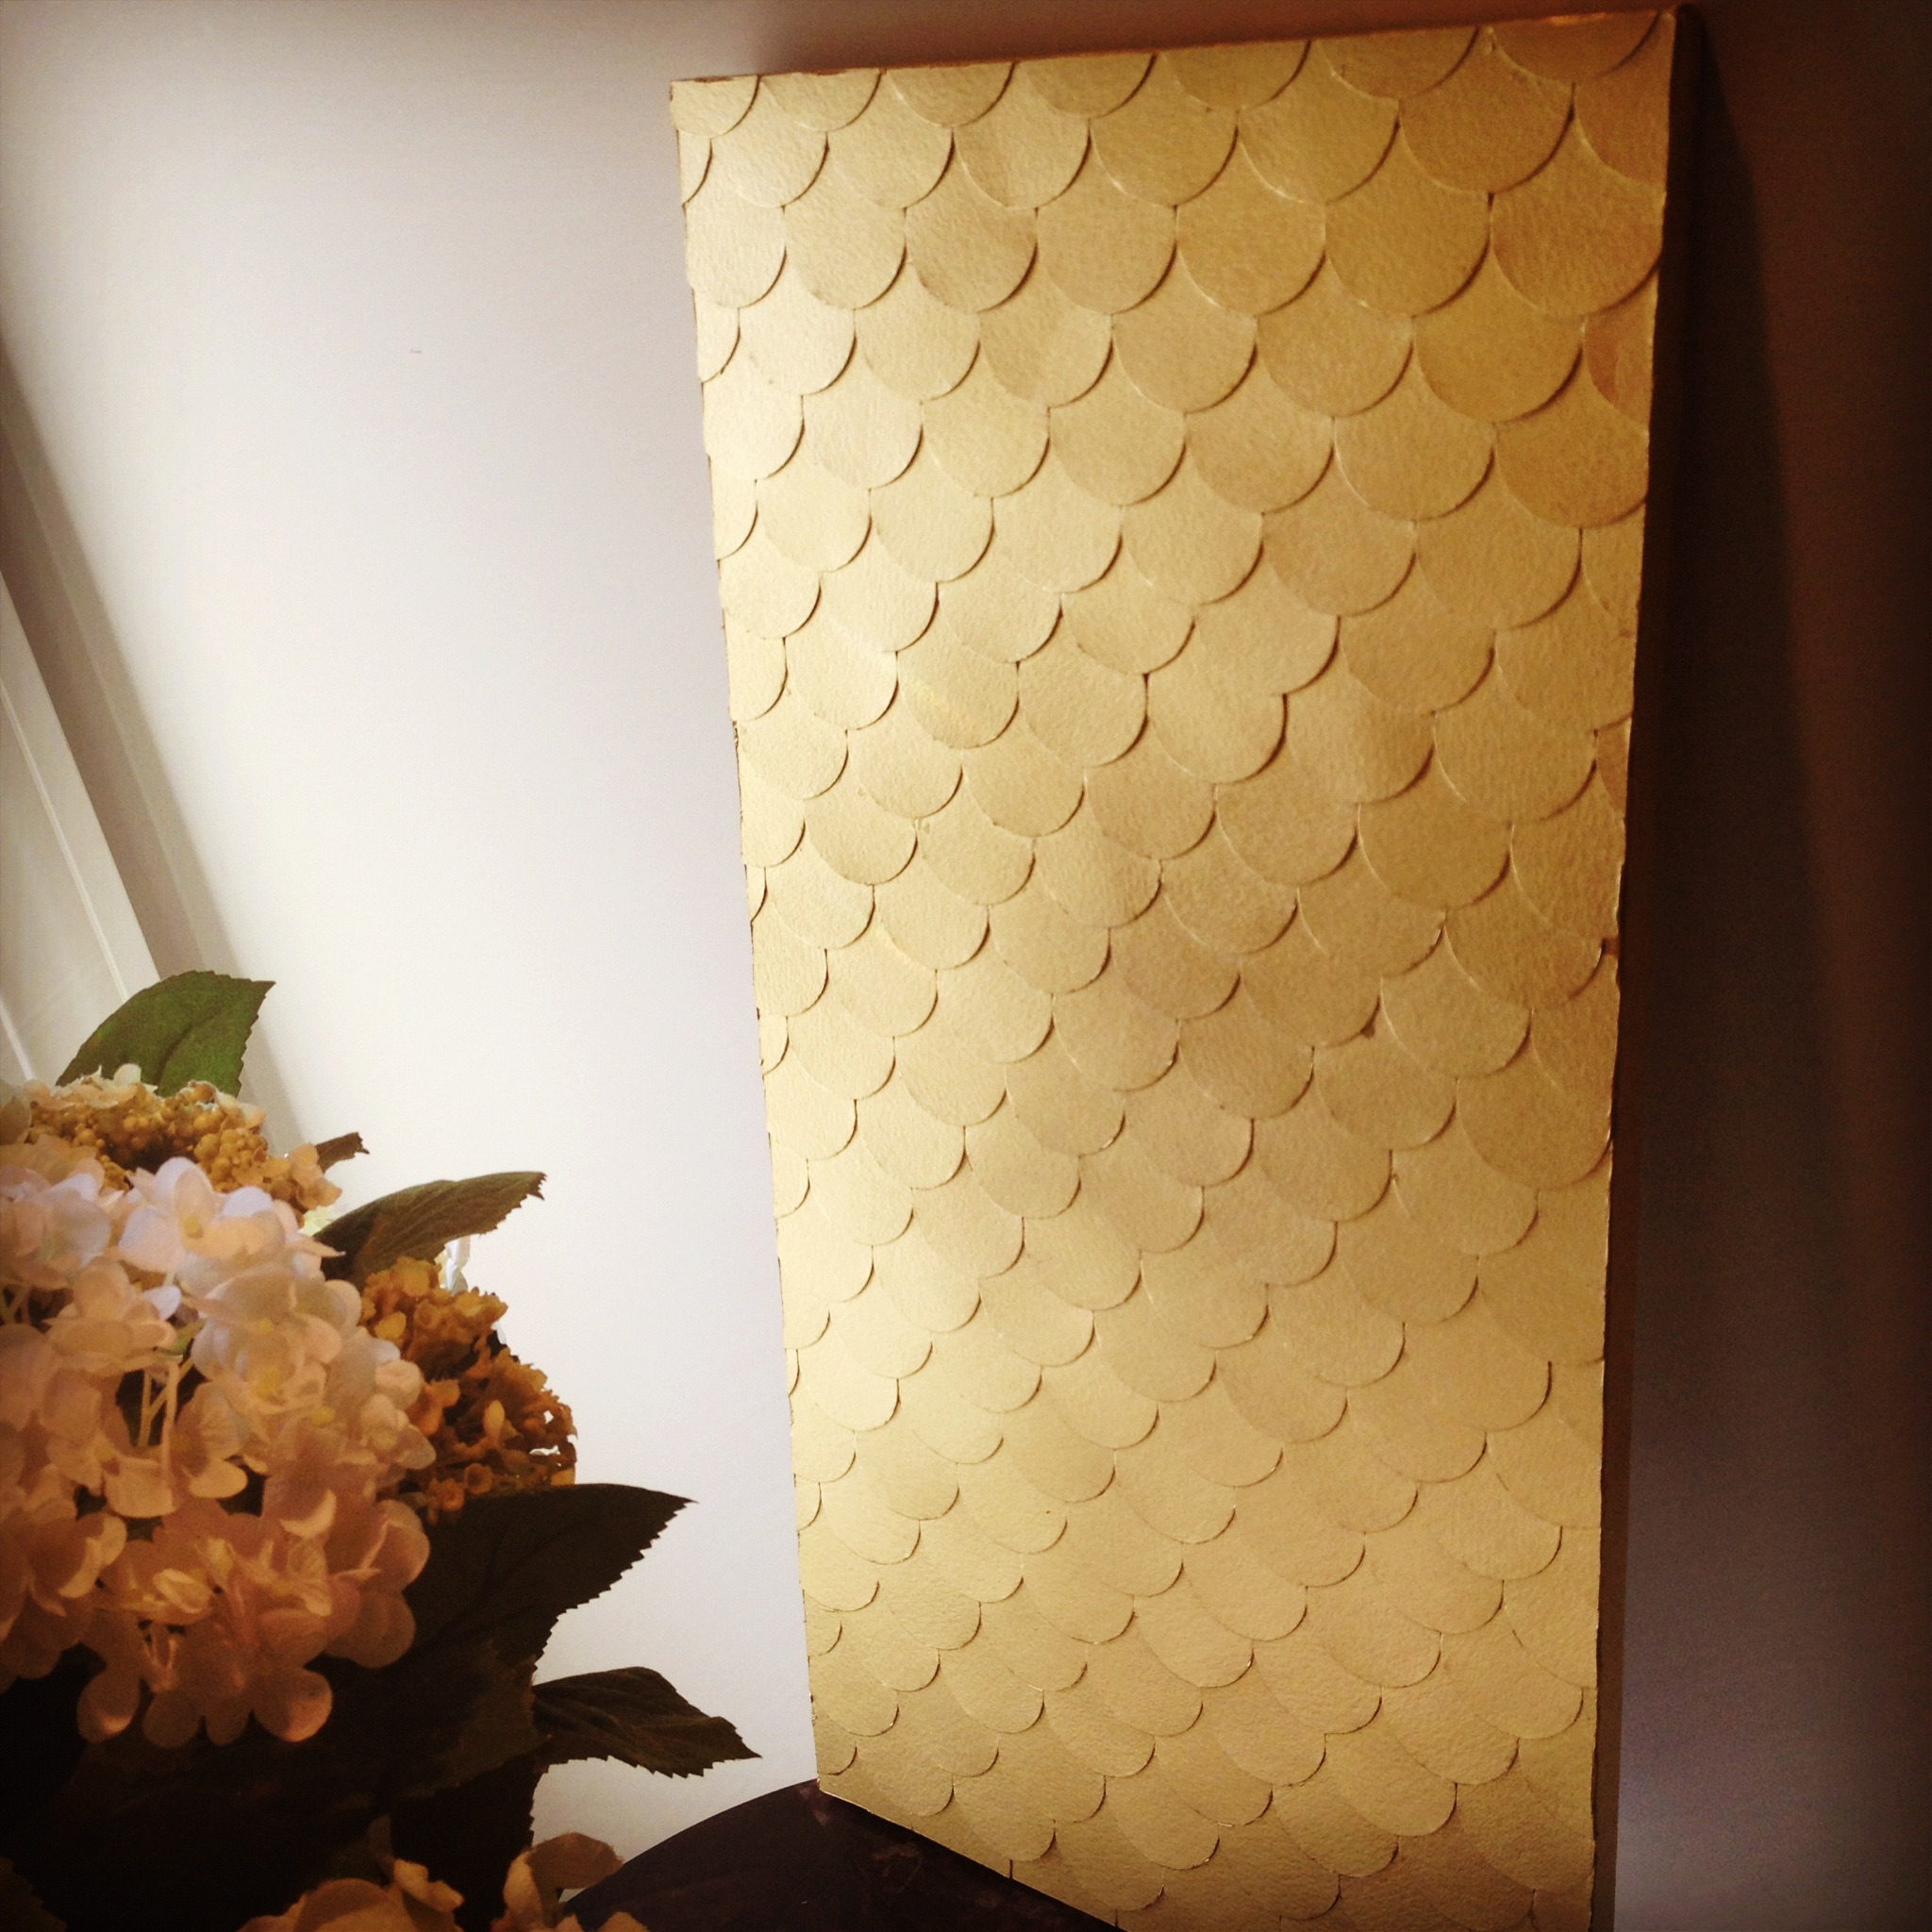 Fish Scale Wall Art Tutorial | The Subtle Statement